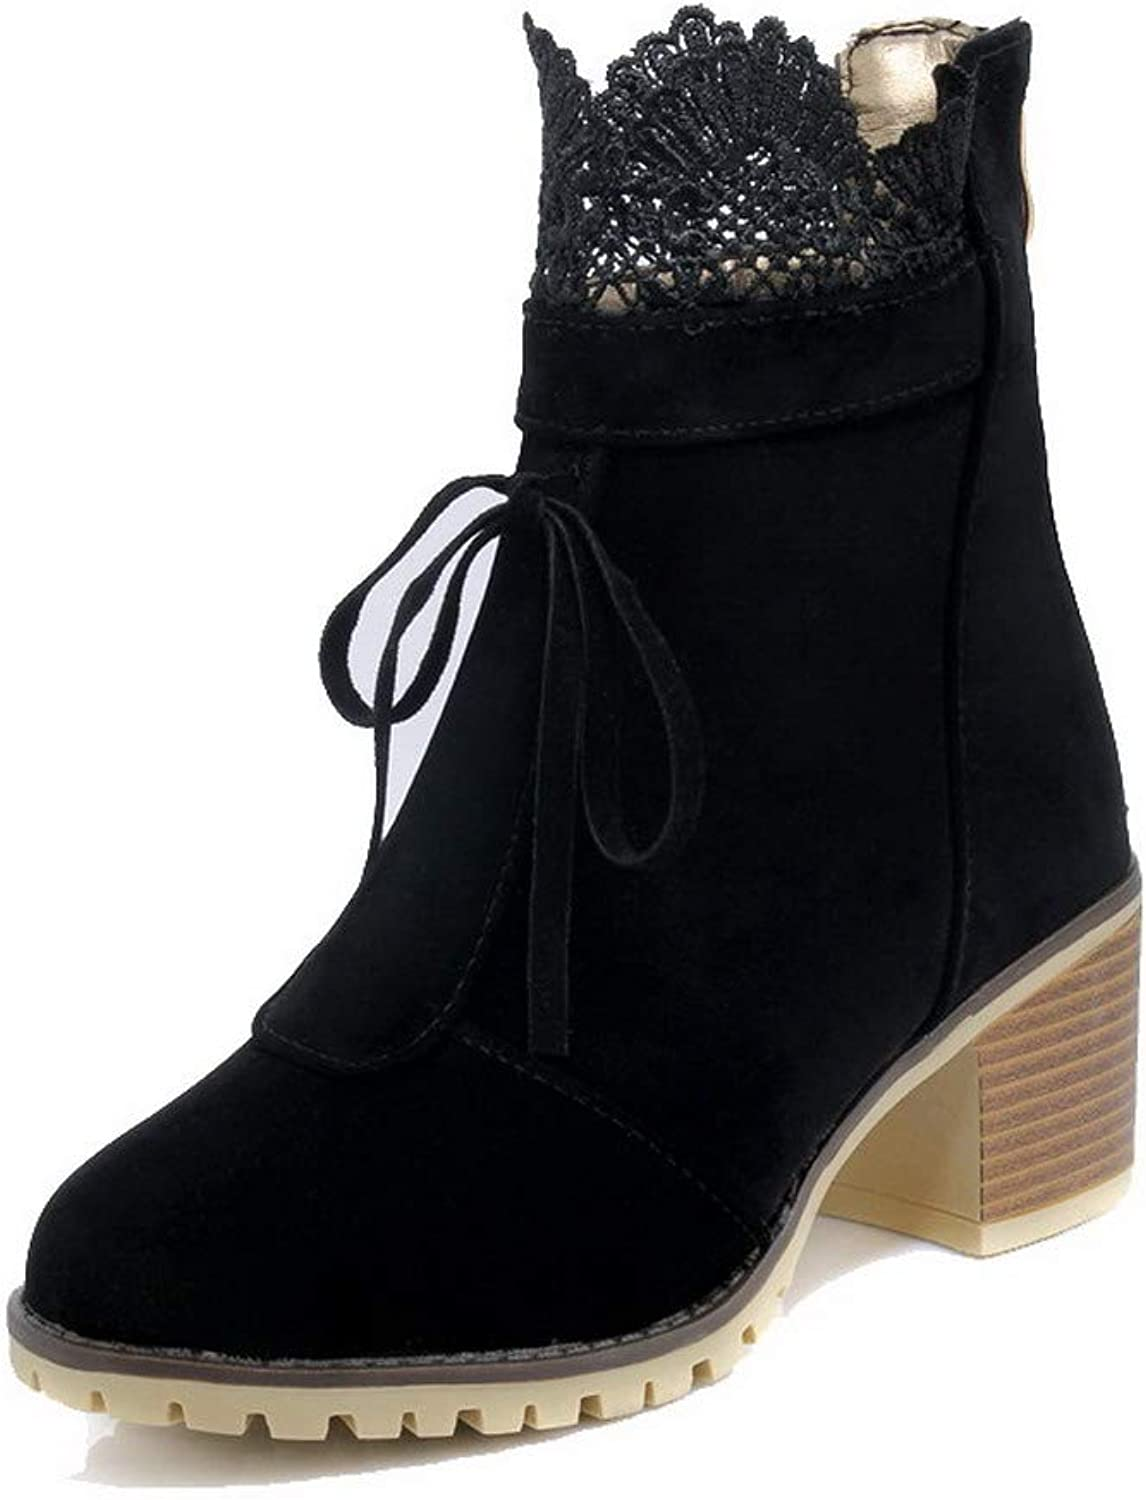 WeiPoot Women's Imitated Suede Zipper Round-Toe Kitten-Heels Ankle-High Boots, EGHXH116370